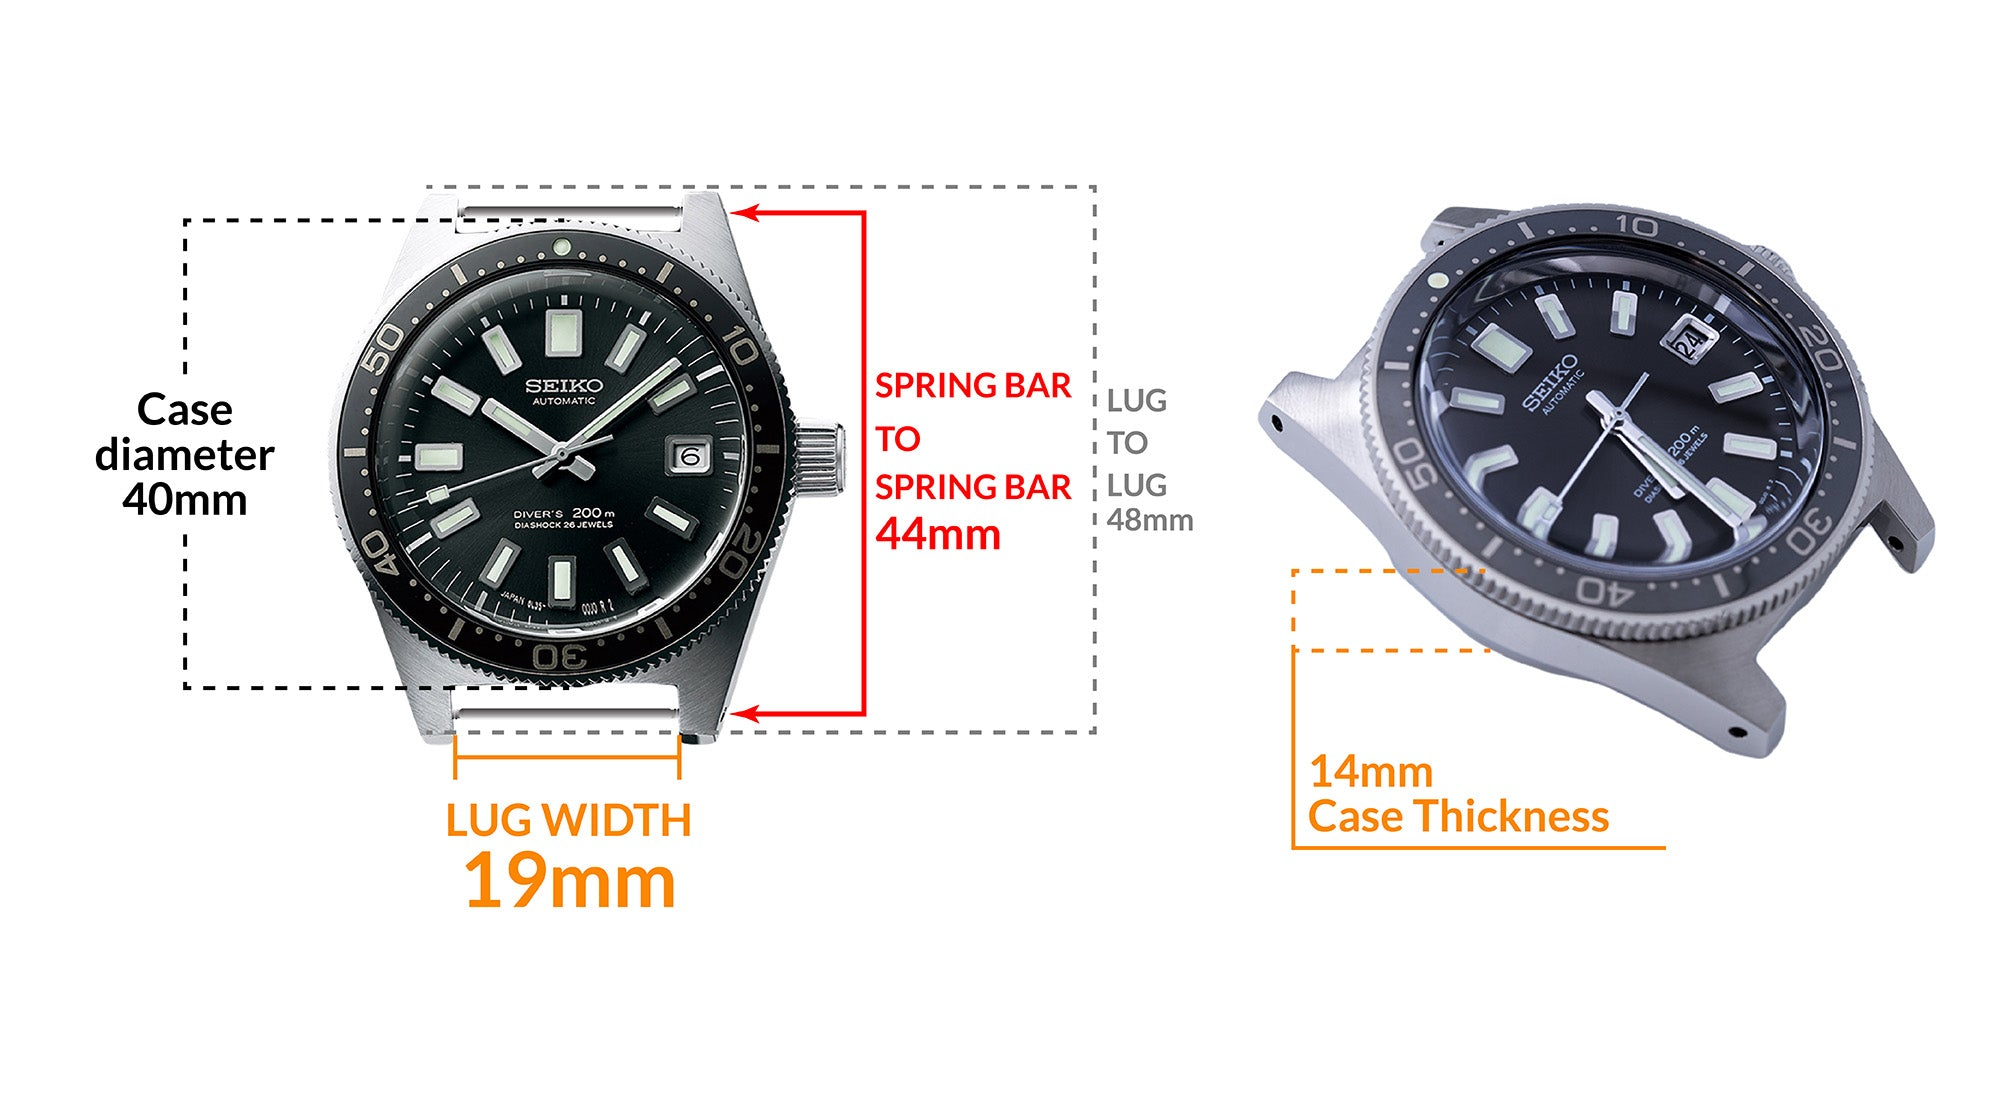 Seiko Prospex Diver SLA017 -  Details Seiko watch size, Lug width and case dimensions